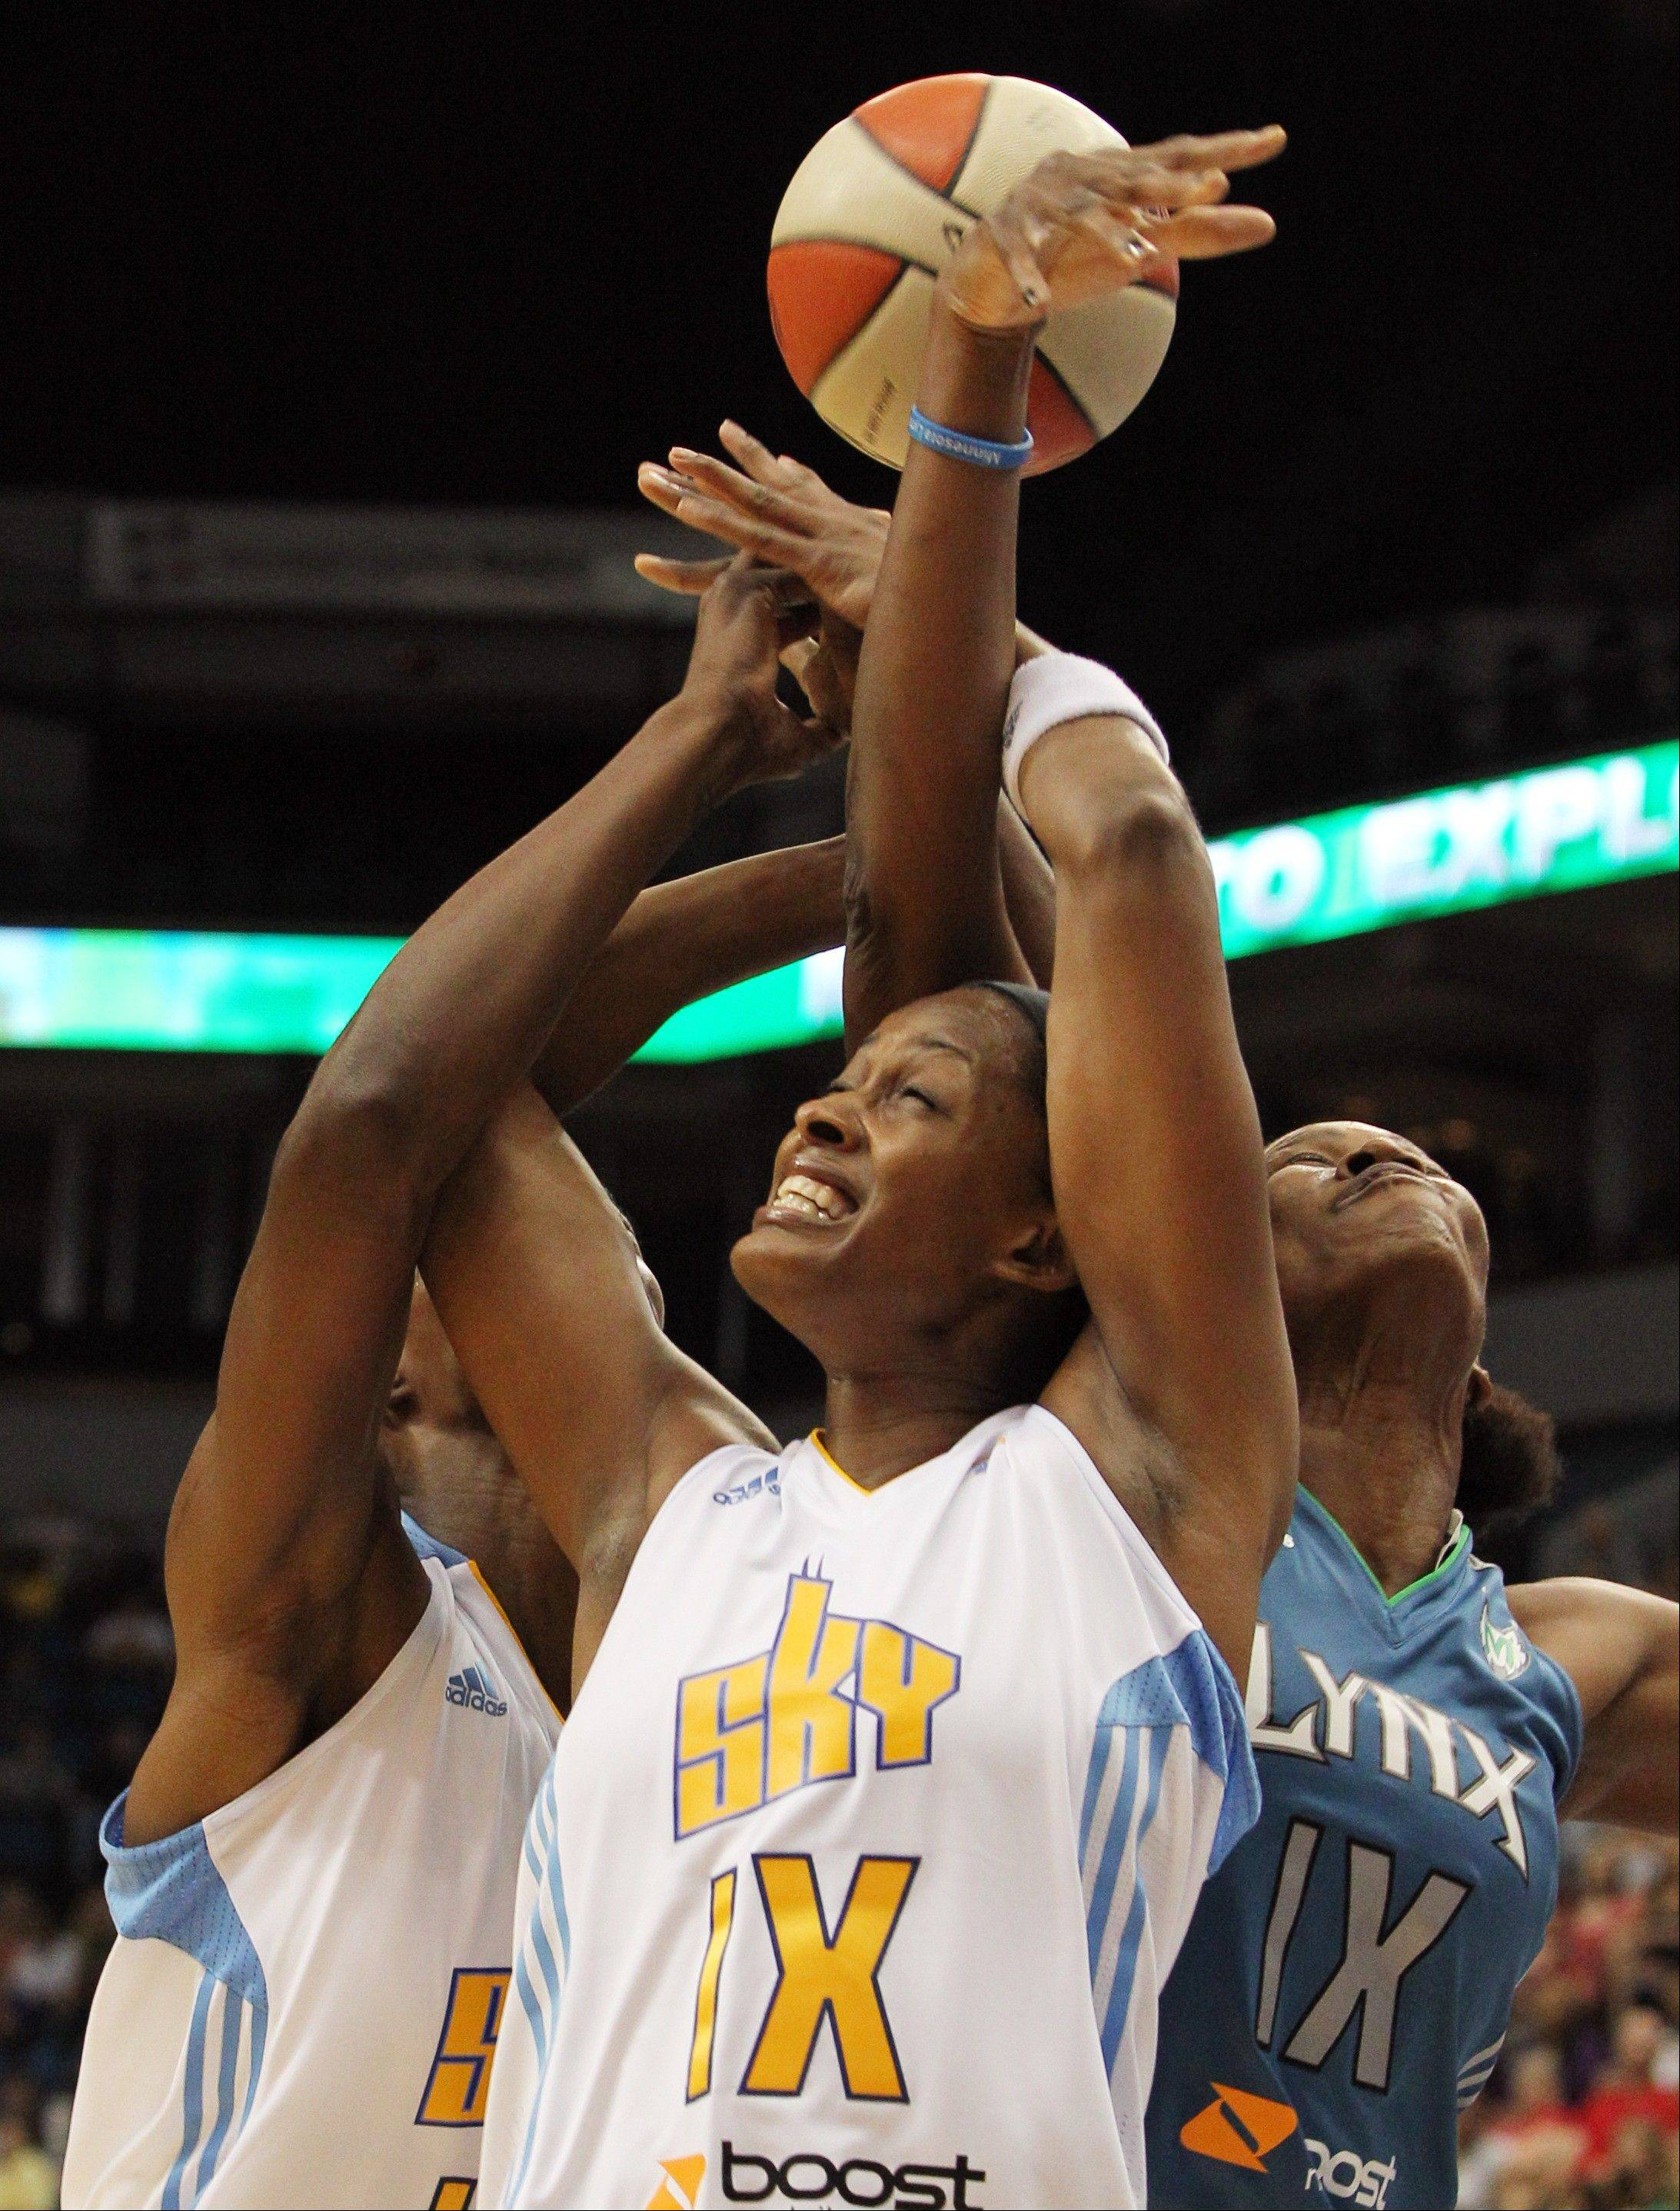 The Chicago Sky returns to the Allstate Arena in Rosemont this weekend.